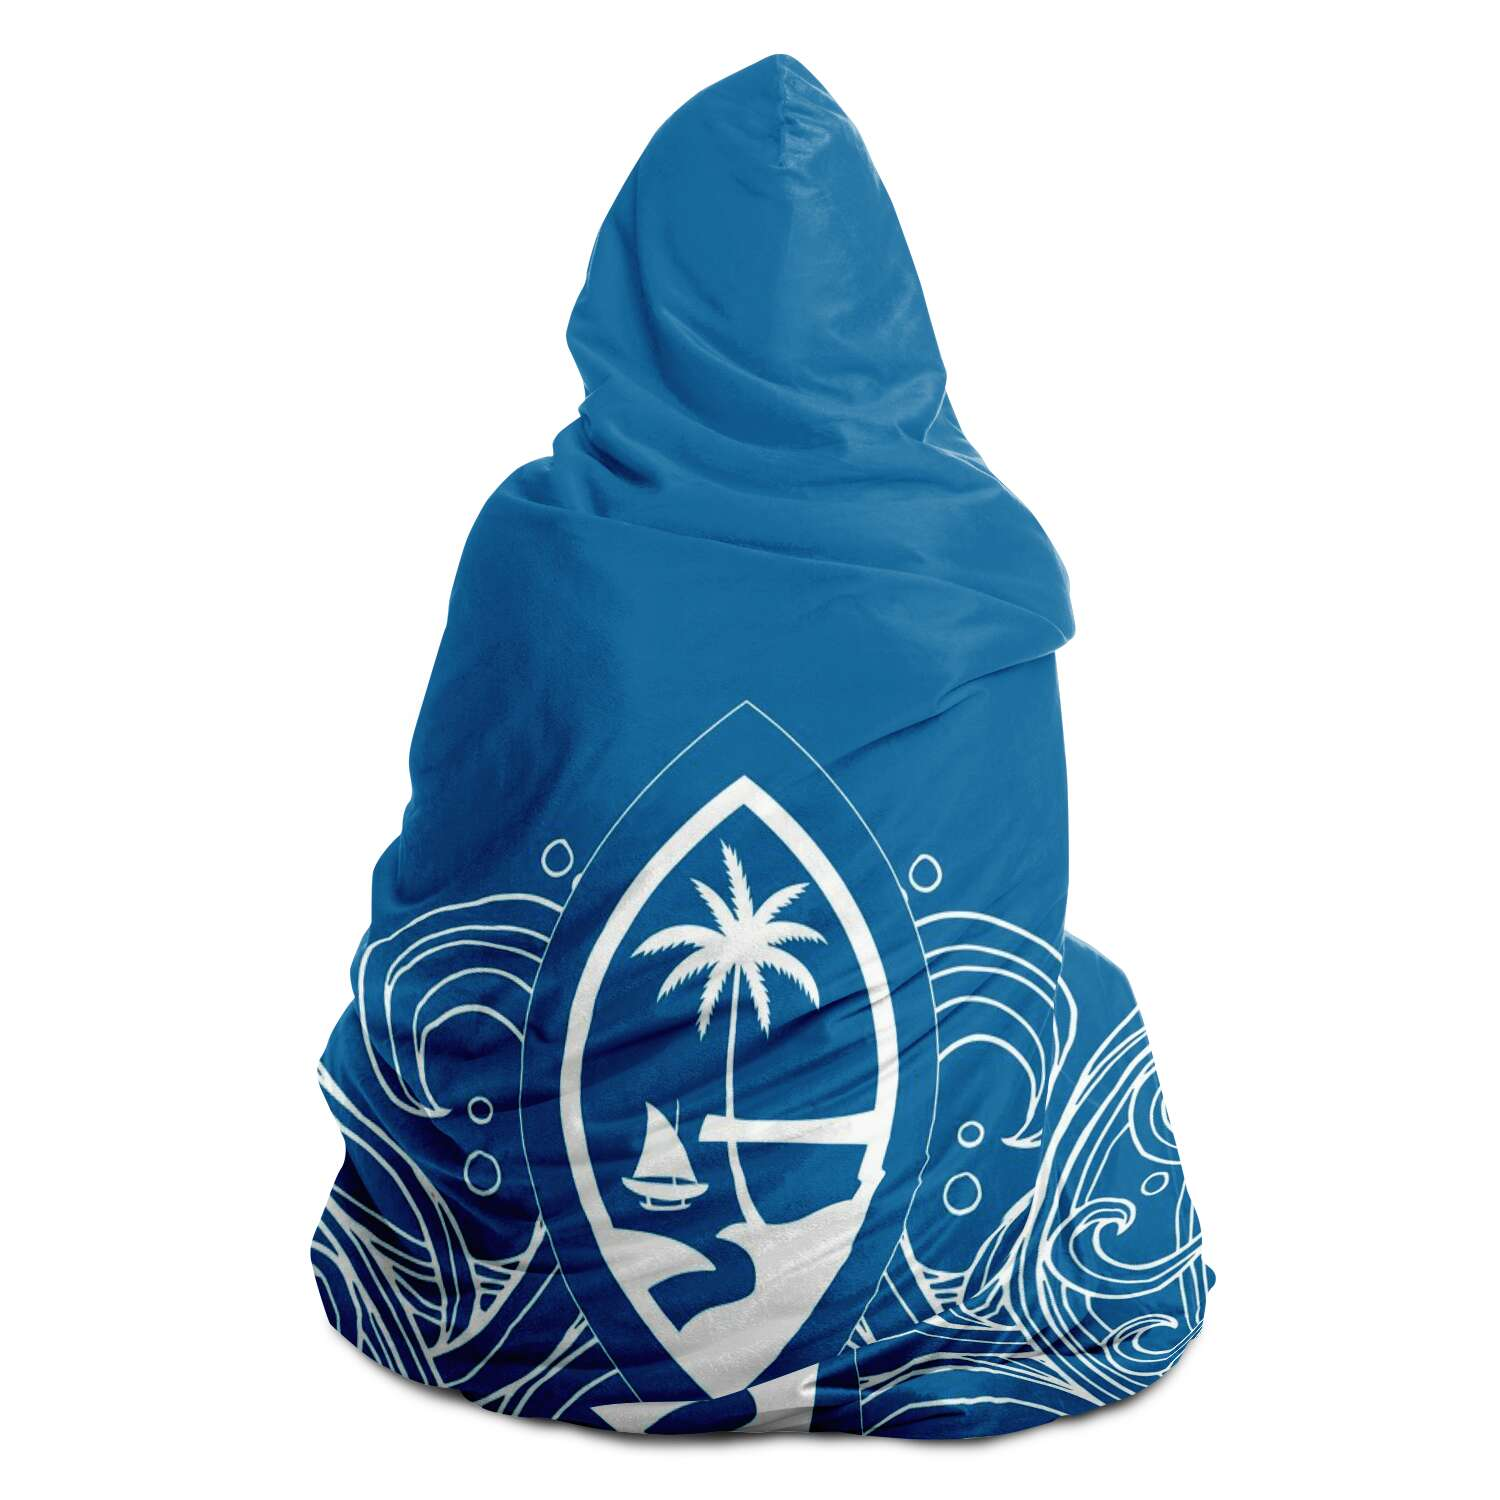 Guam Seal Hand Drawn Waves Premium Sherpa Hooded Blanket